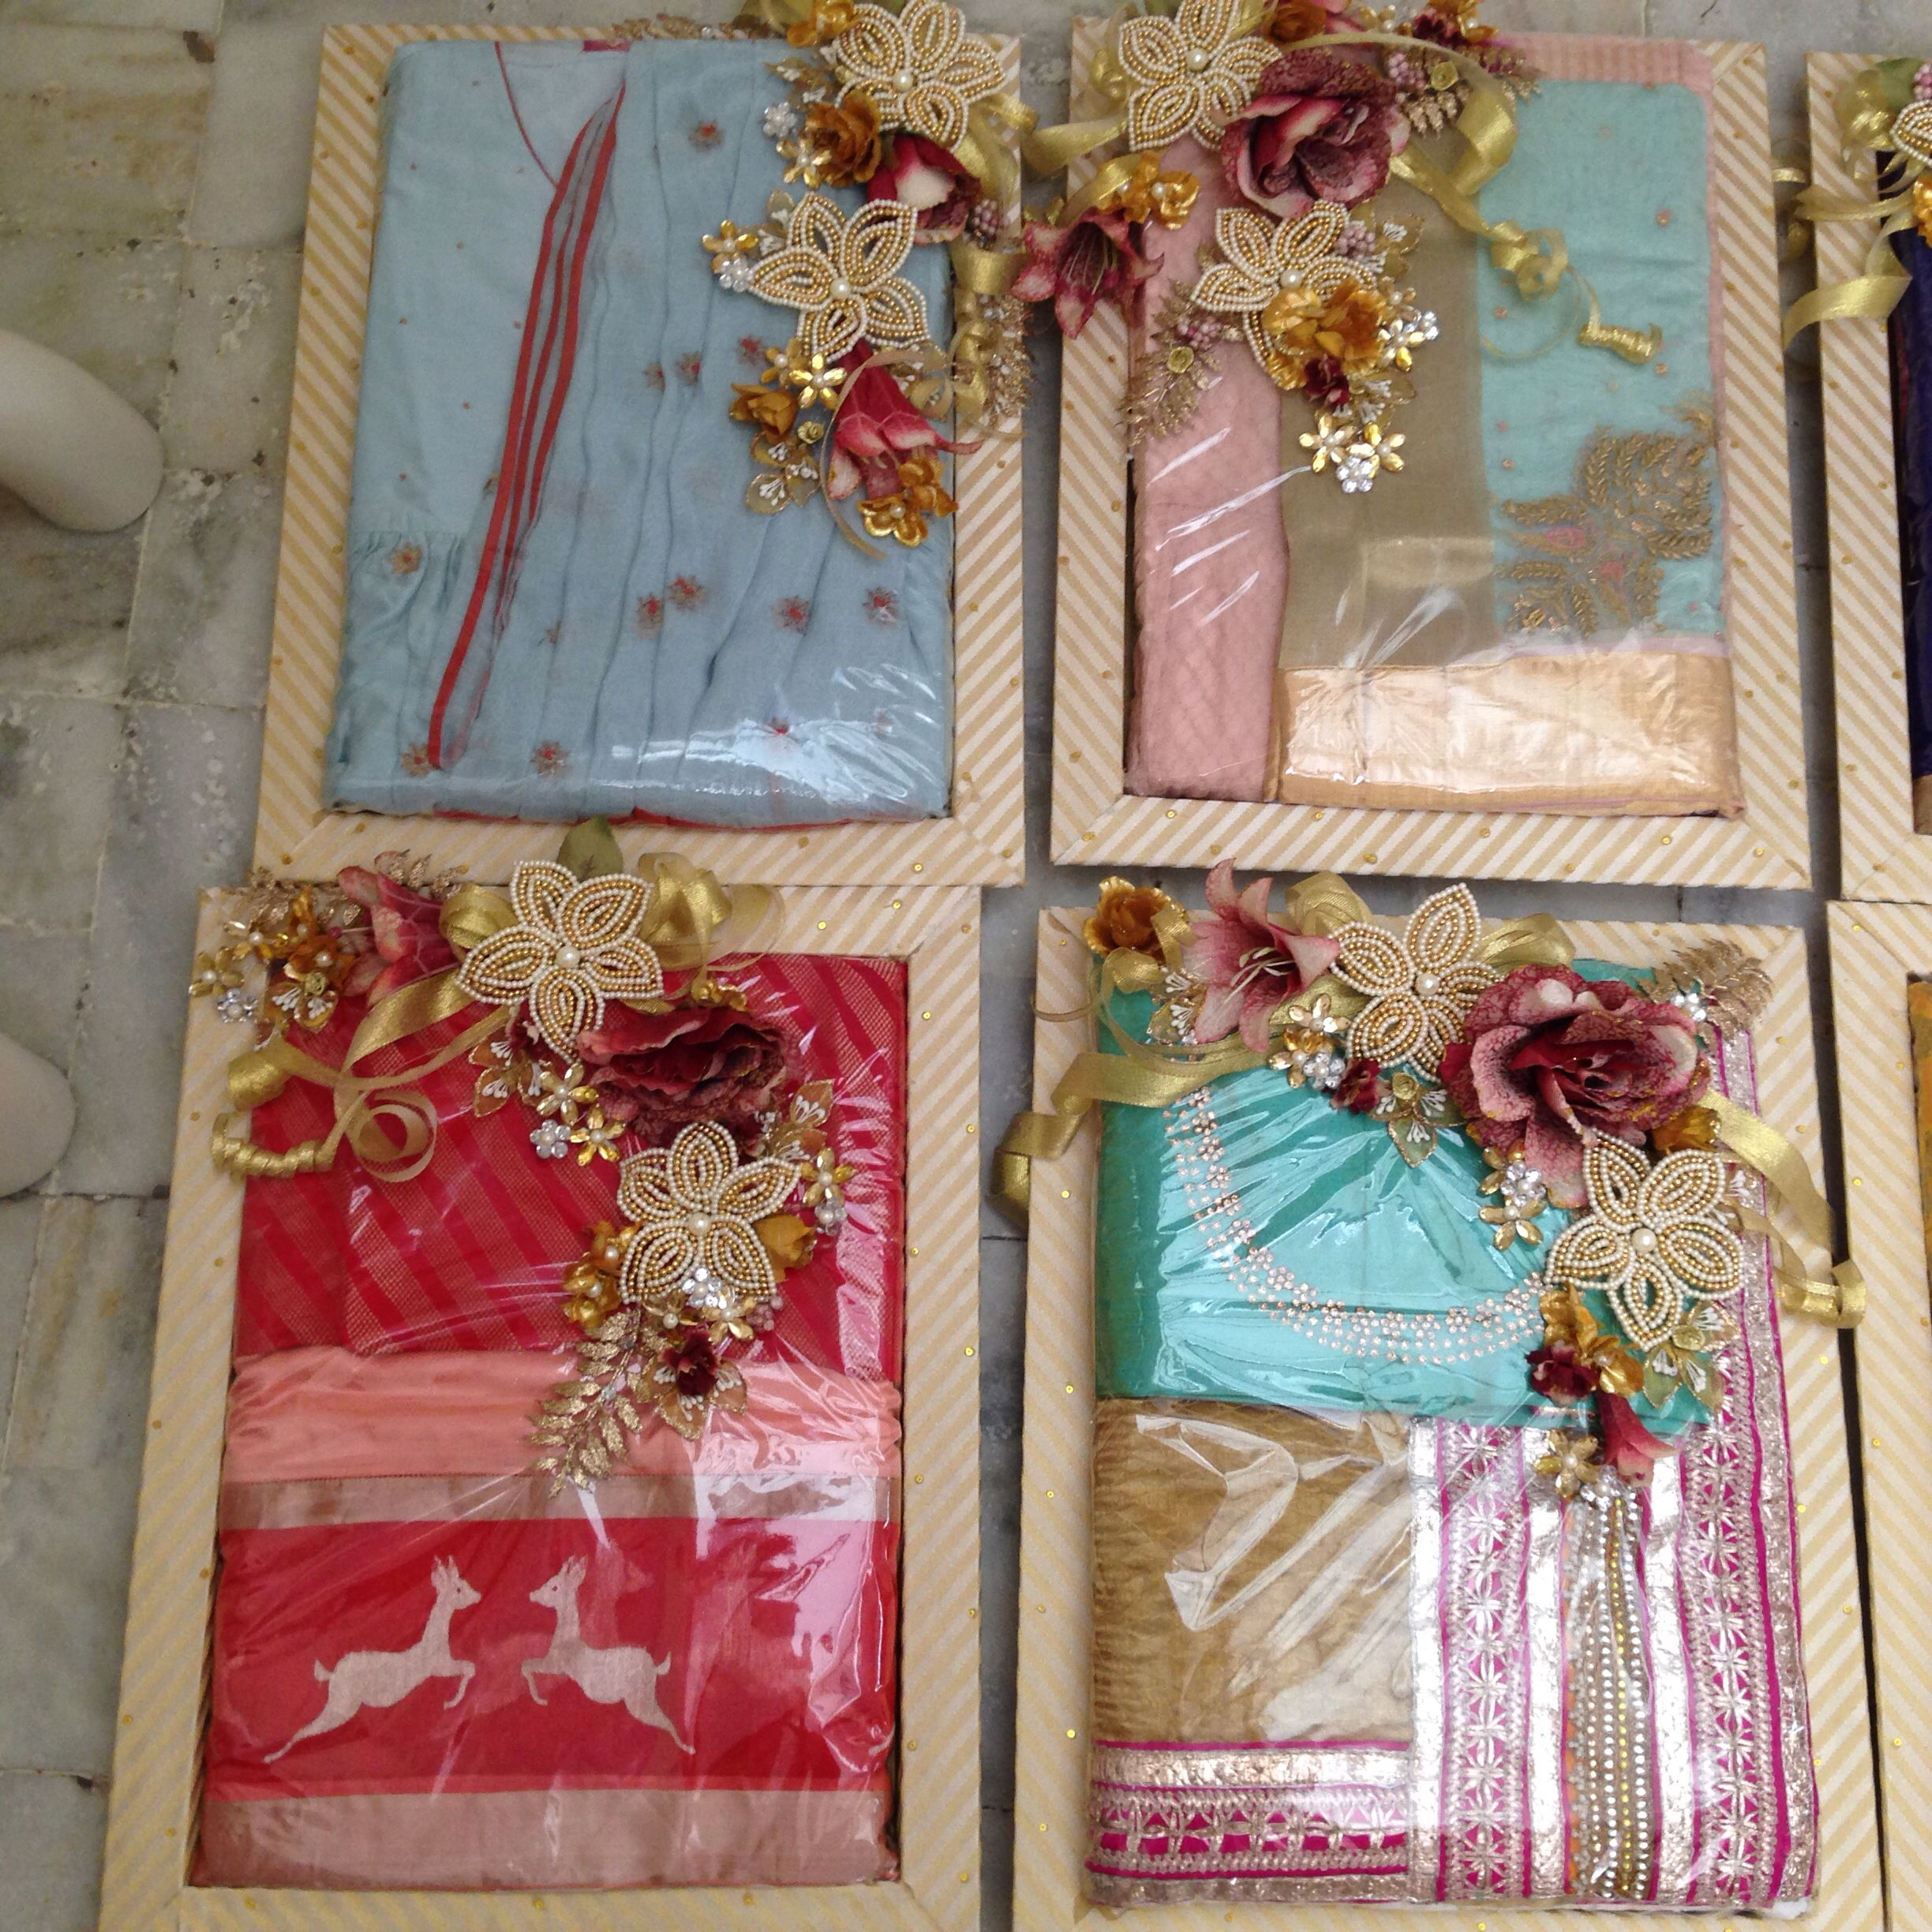 Sareepackingindian wedding Wedding gifts packaging